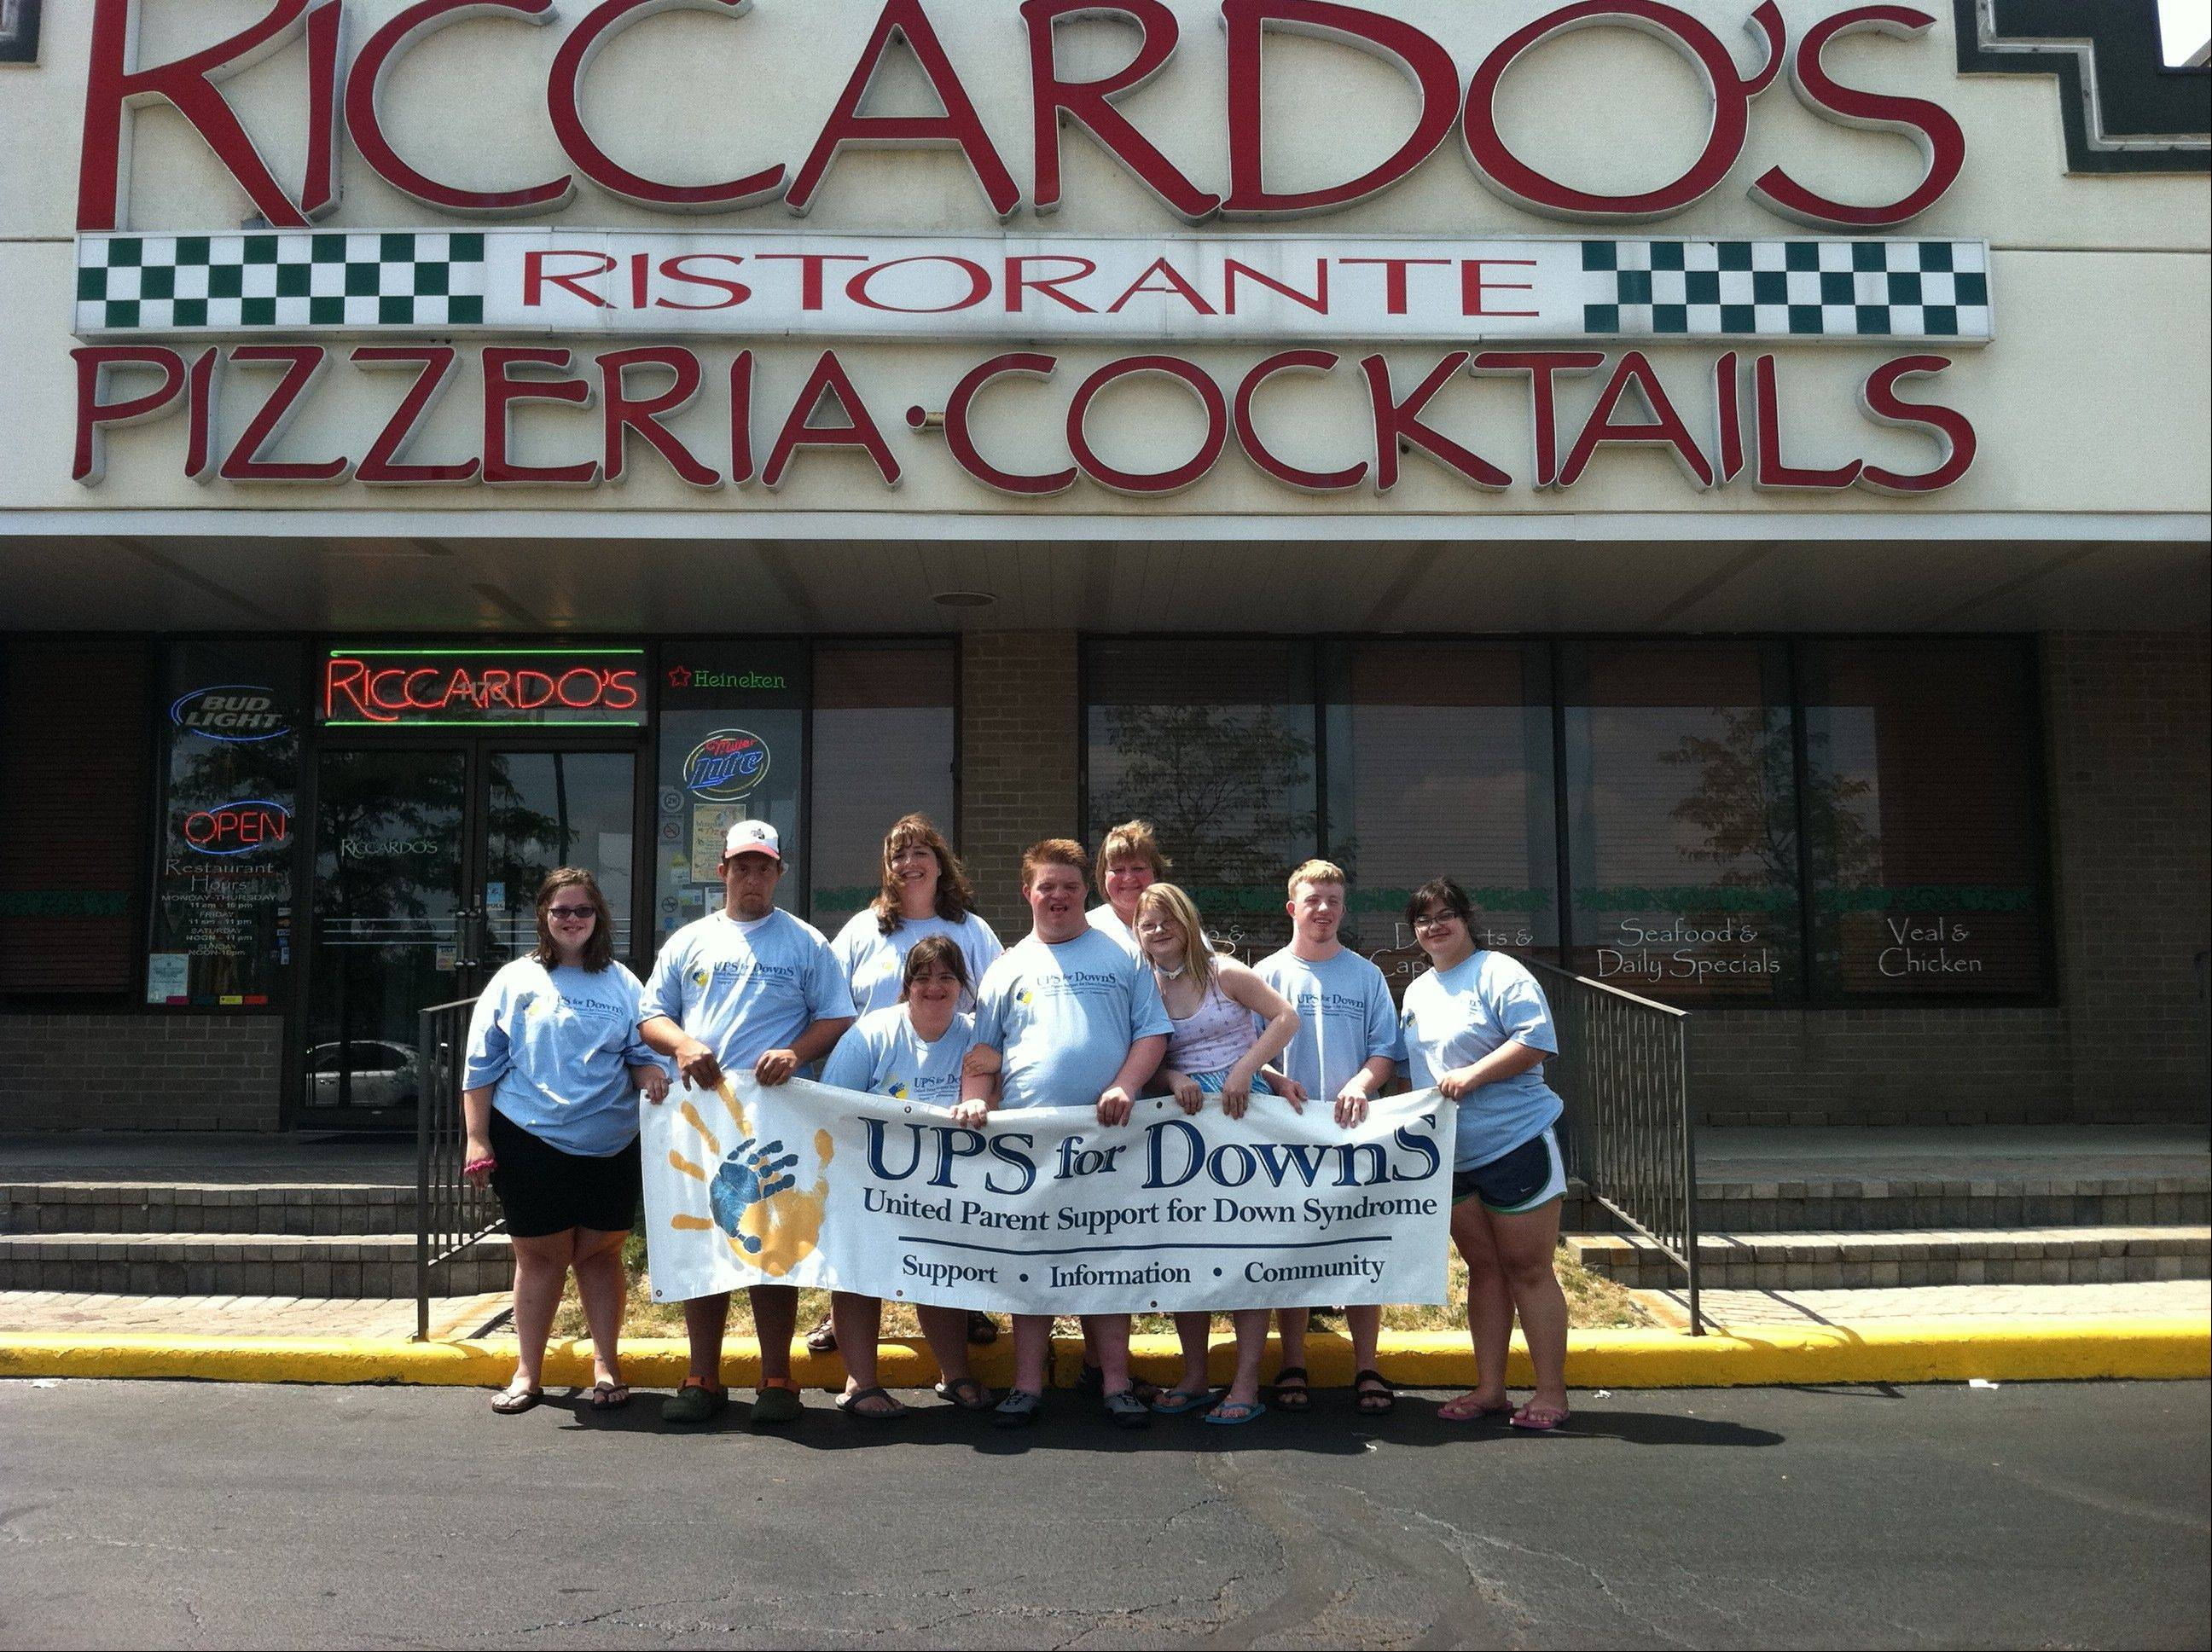 On Tuesday, UPS for DownS members worked as servers at a pasta fundraiser for the American Cancer Society at Riccardo's Ristorante in Schaumburg.